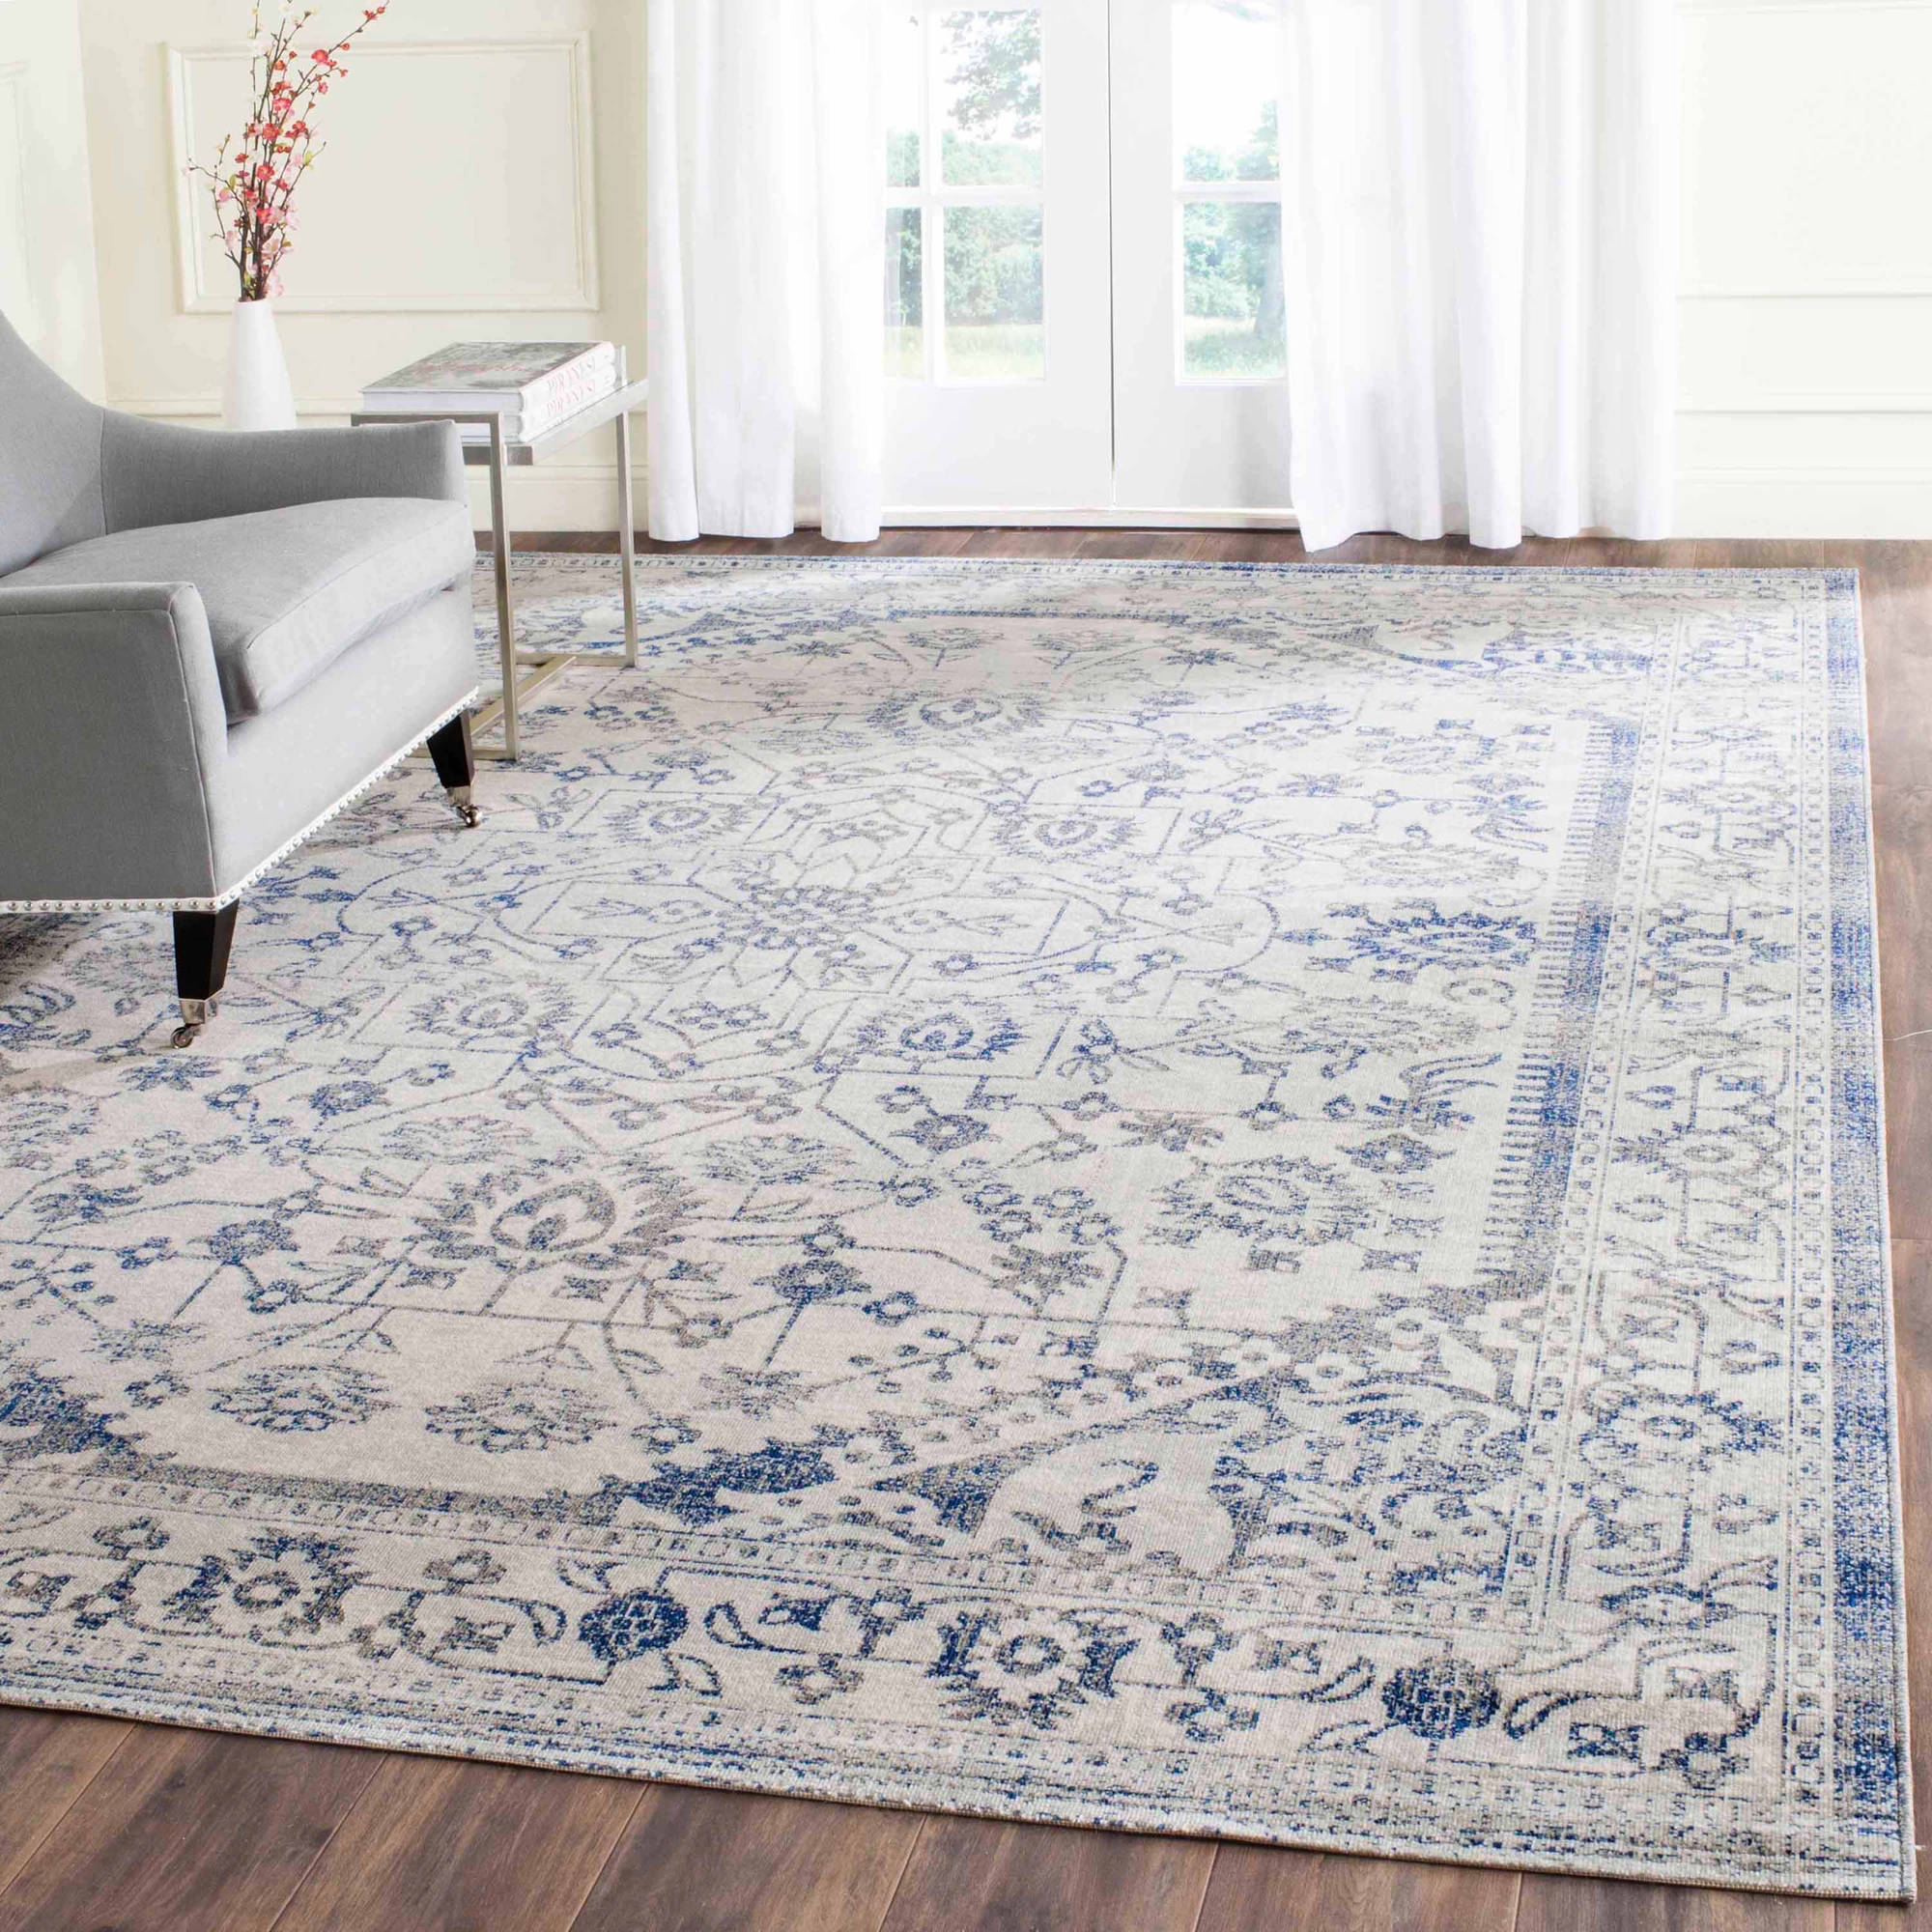 Safavieh Artisan Rhoda Power-Loomed Area Rug